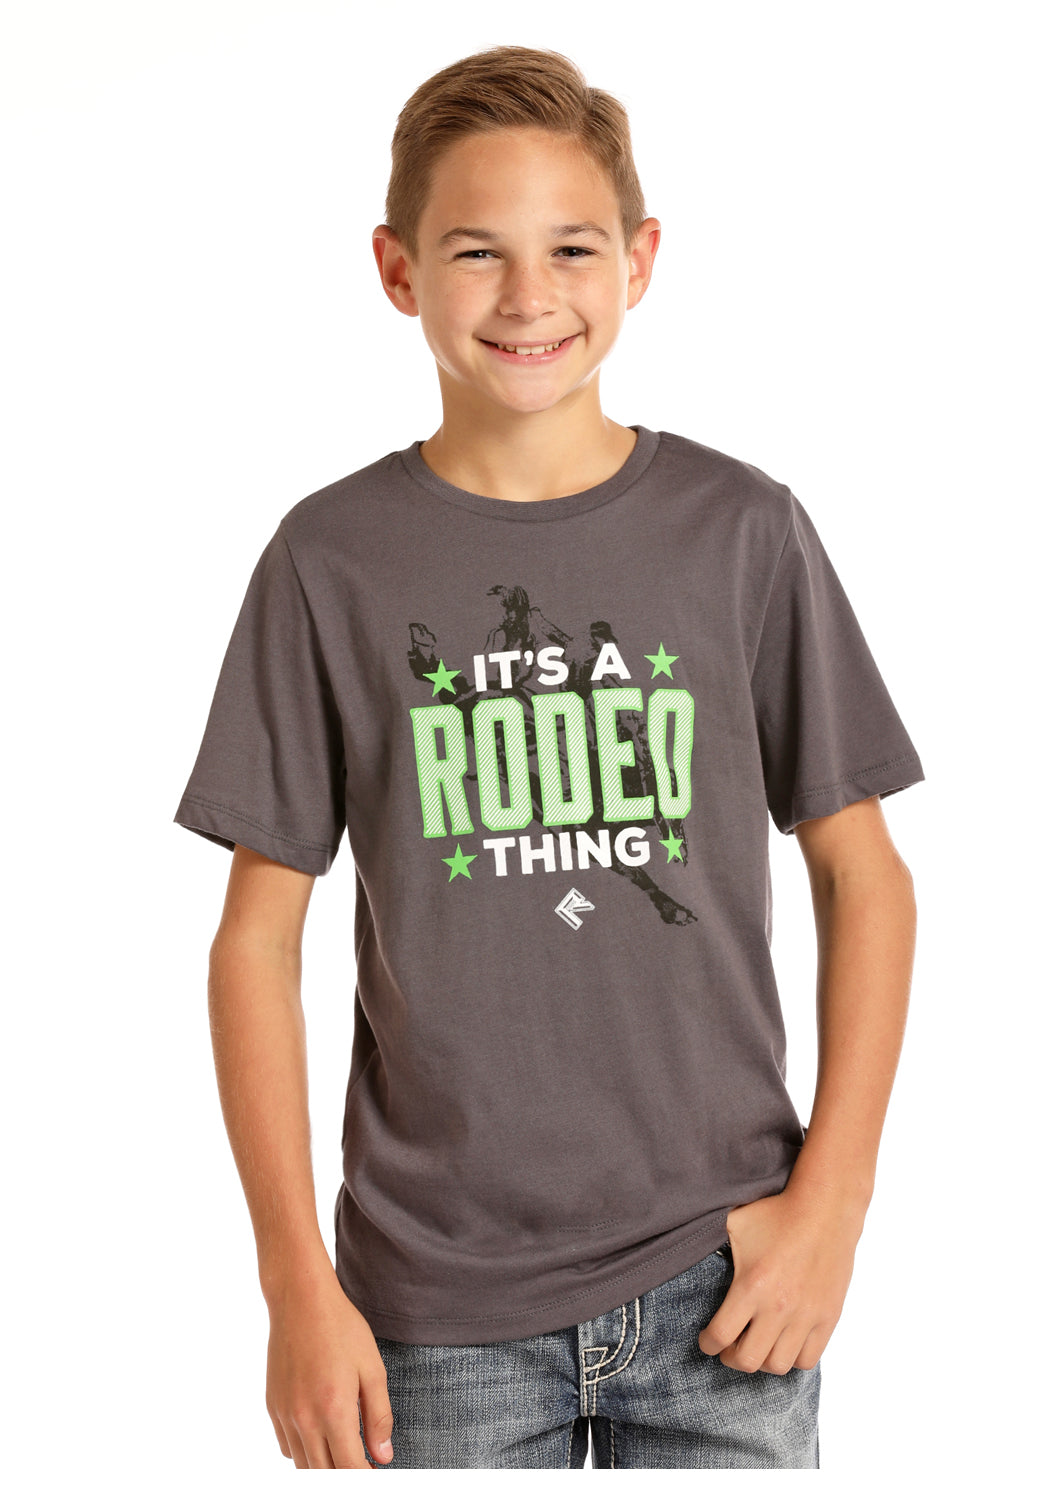 Boy's Rock & Roll Cowboy T-Shirt #P3T6359